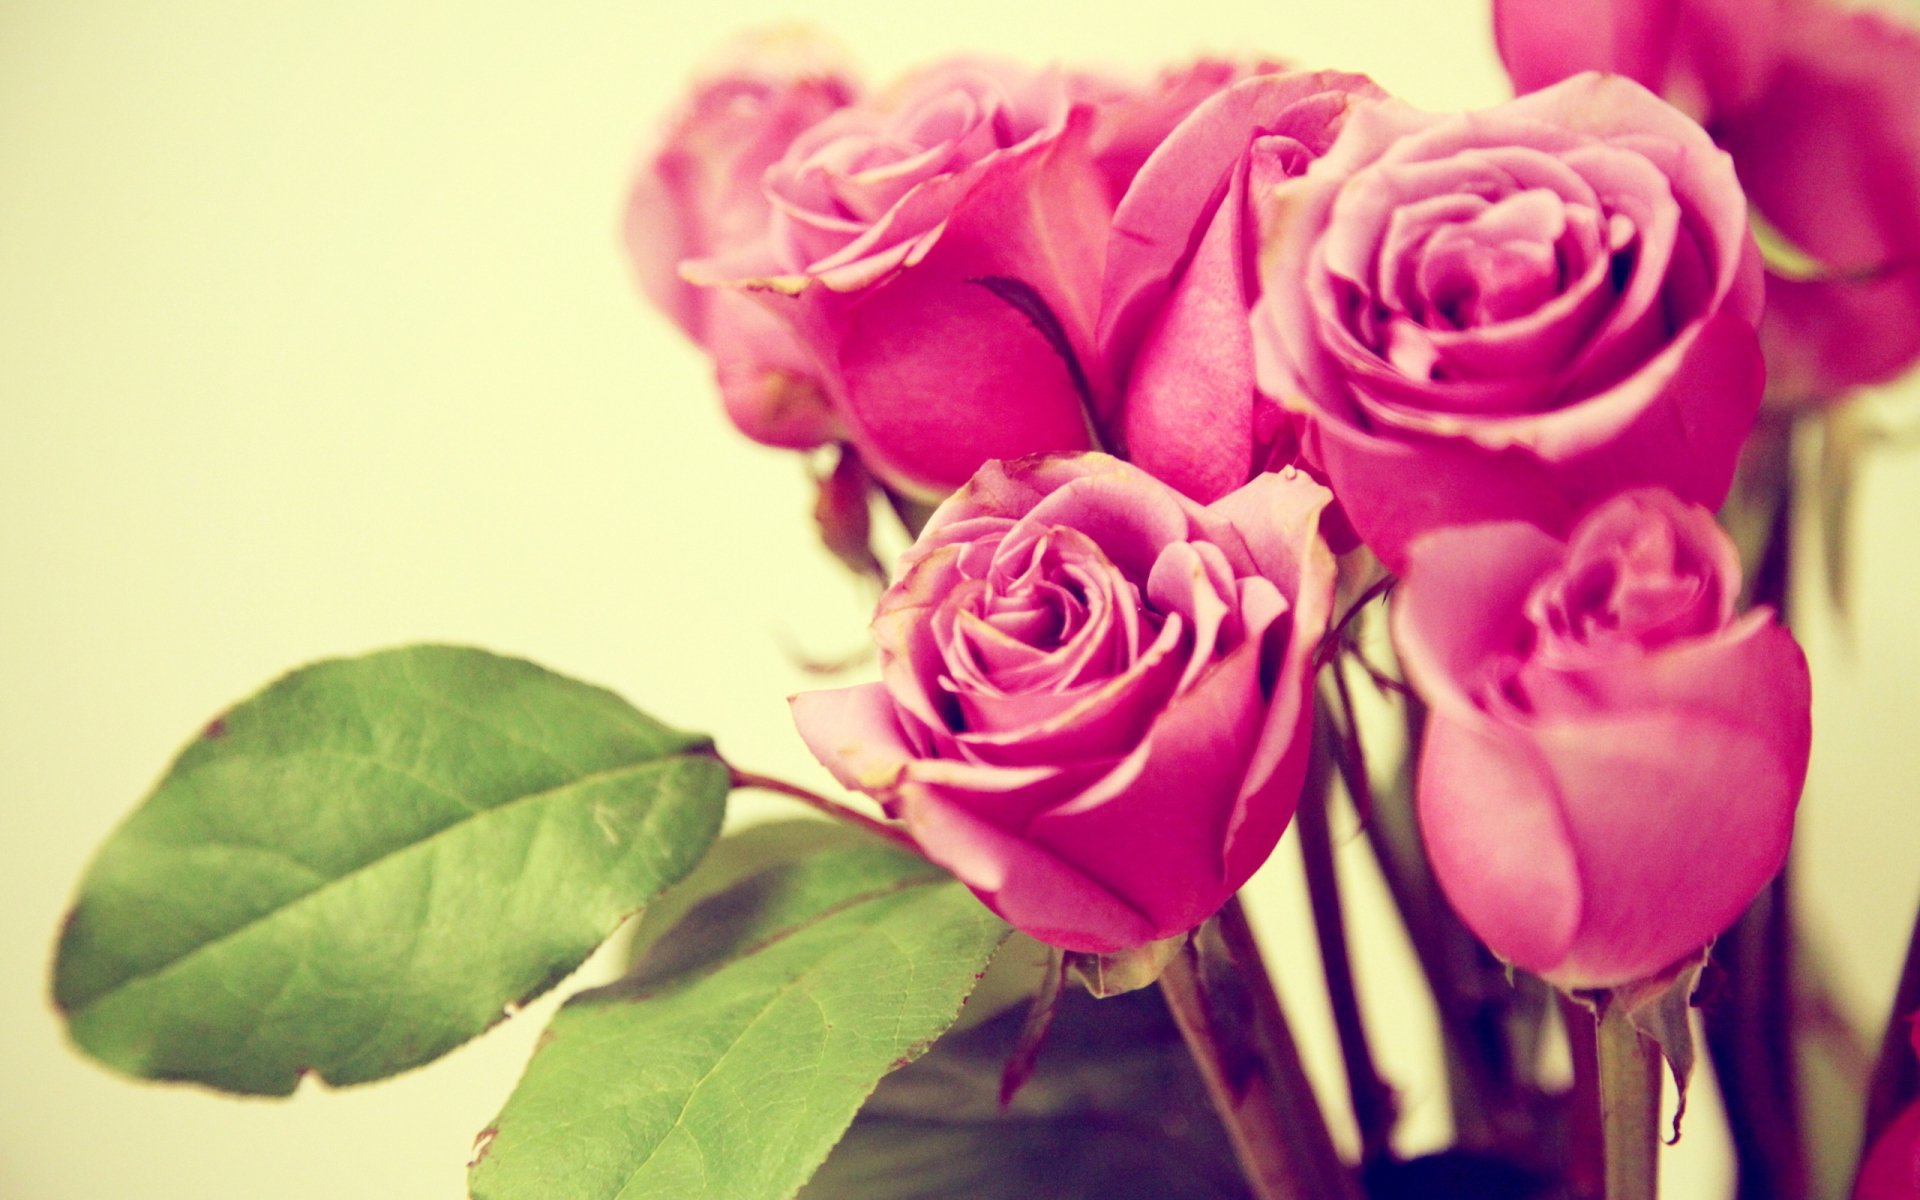 pink roses cute hd desktop wallpapers 4k hd. Black Bedroom Furniture Sets. Home Design Ideas